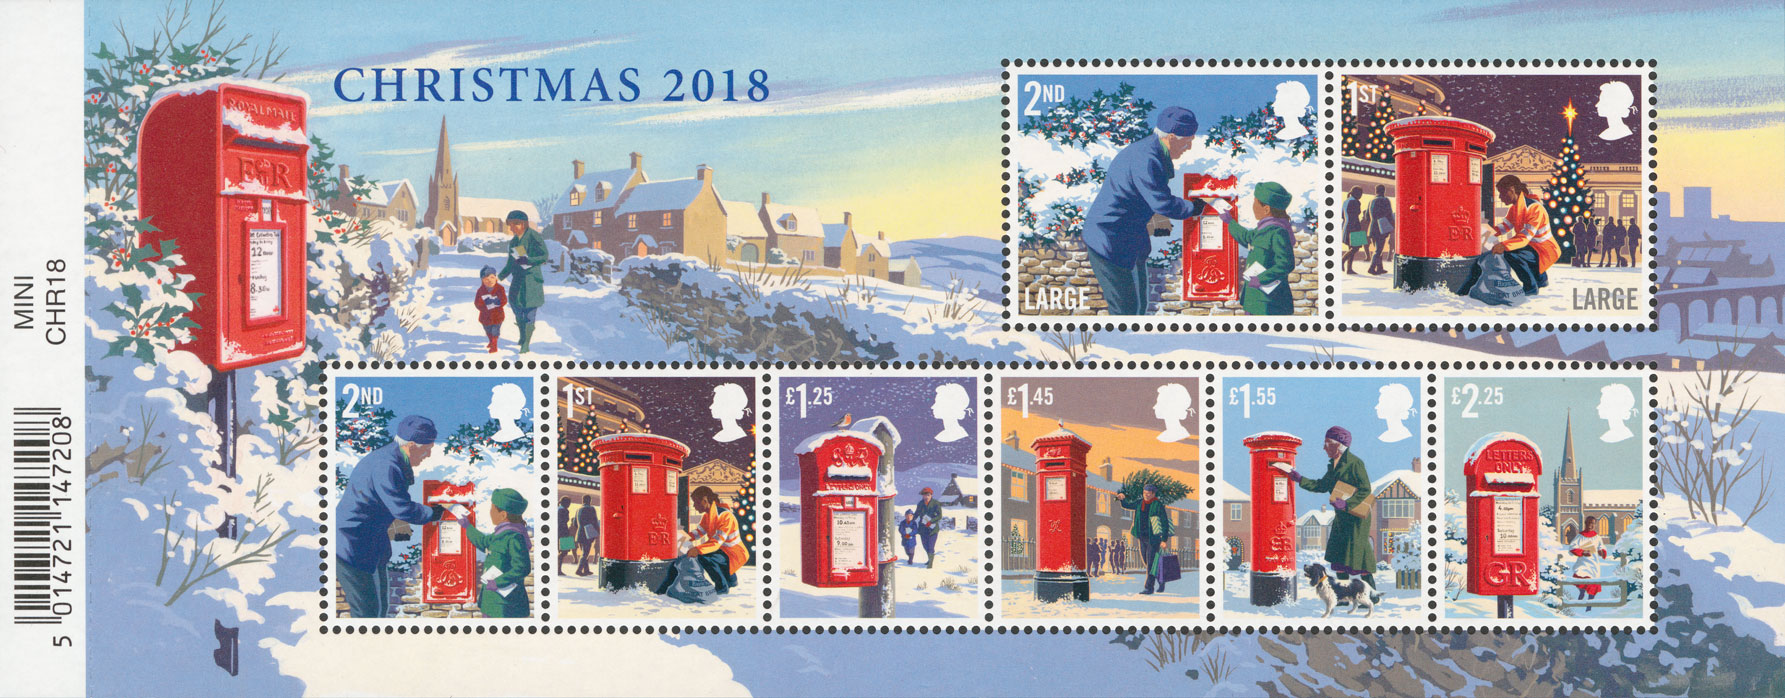 A miniature sheet featuring all the issued Christmas stamps from 2018 in a wintry landscape setting.